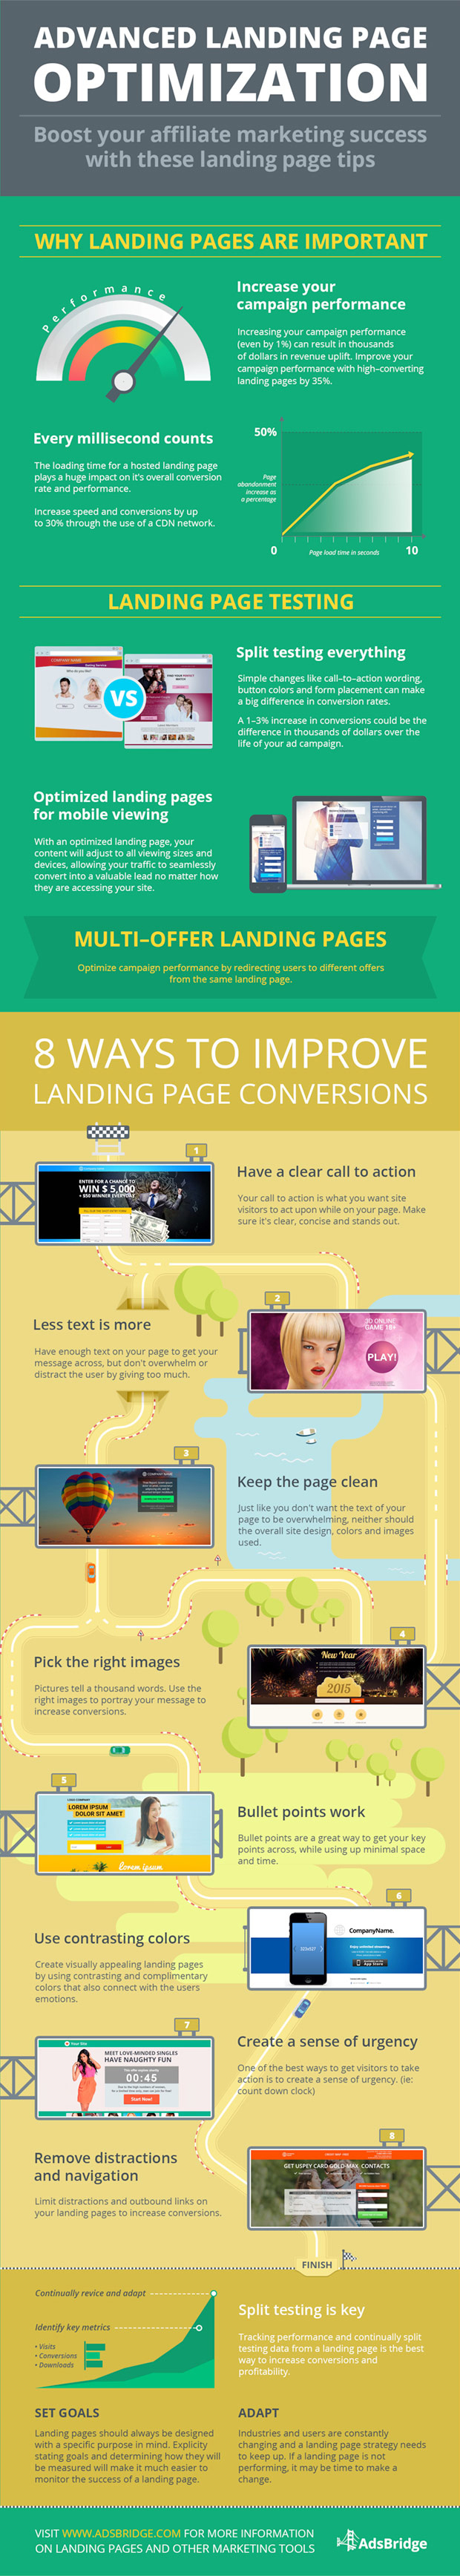 landing page optimization to improve conversions